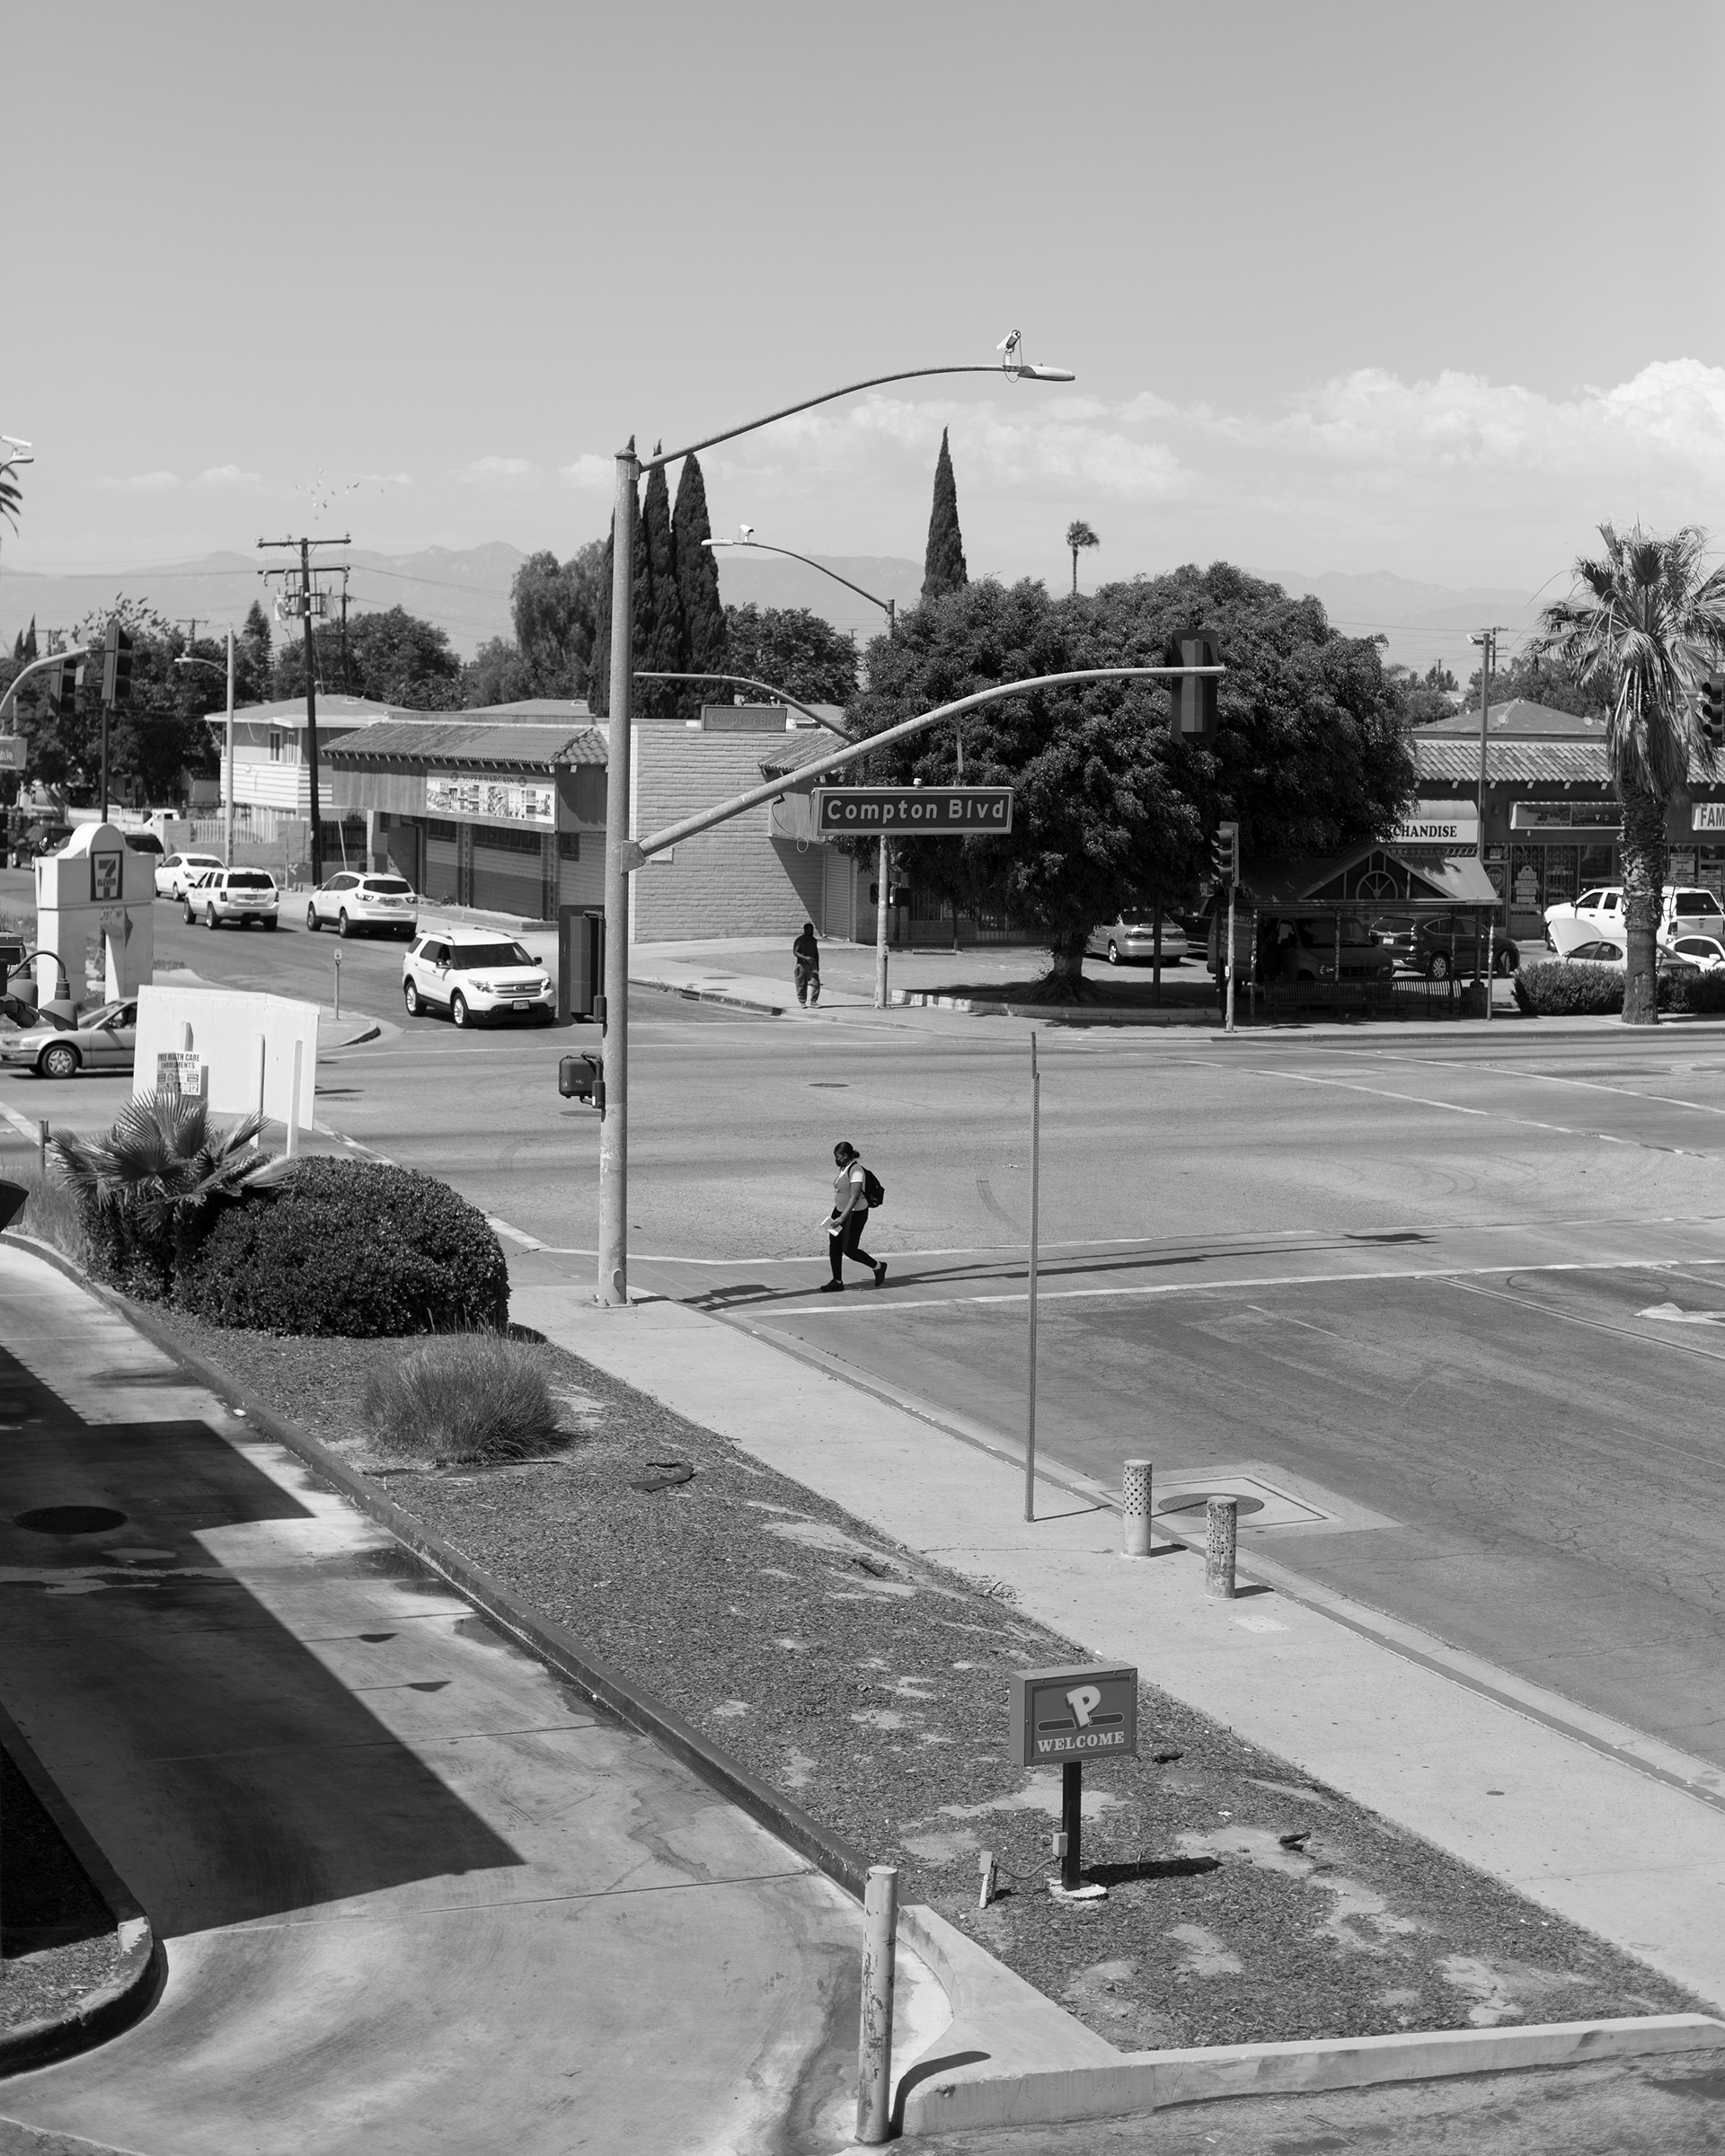 Compton's health and economic deficits are compounded by the absence of well-paying jobs and a high proportion of undocumented immigrants who lack health insurance.